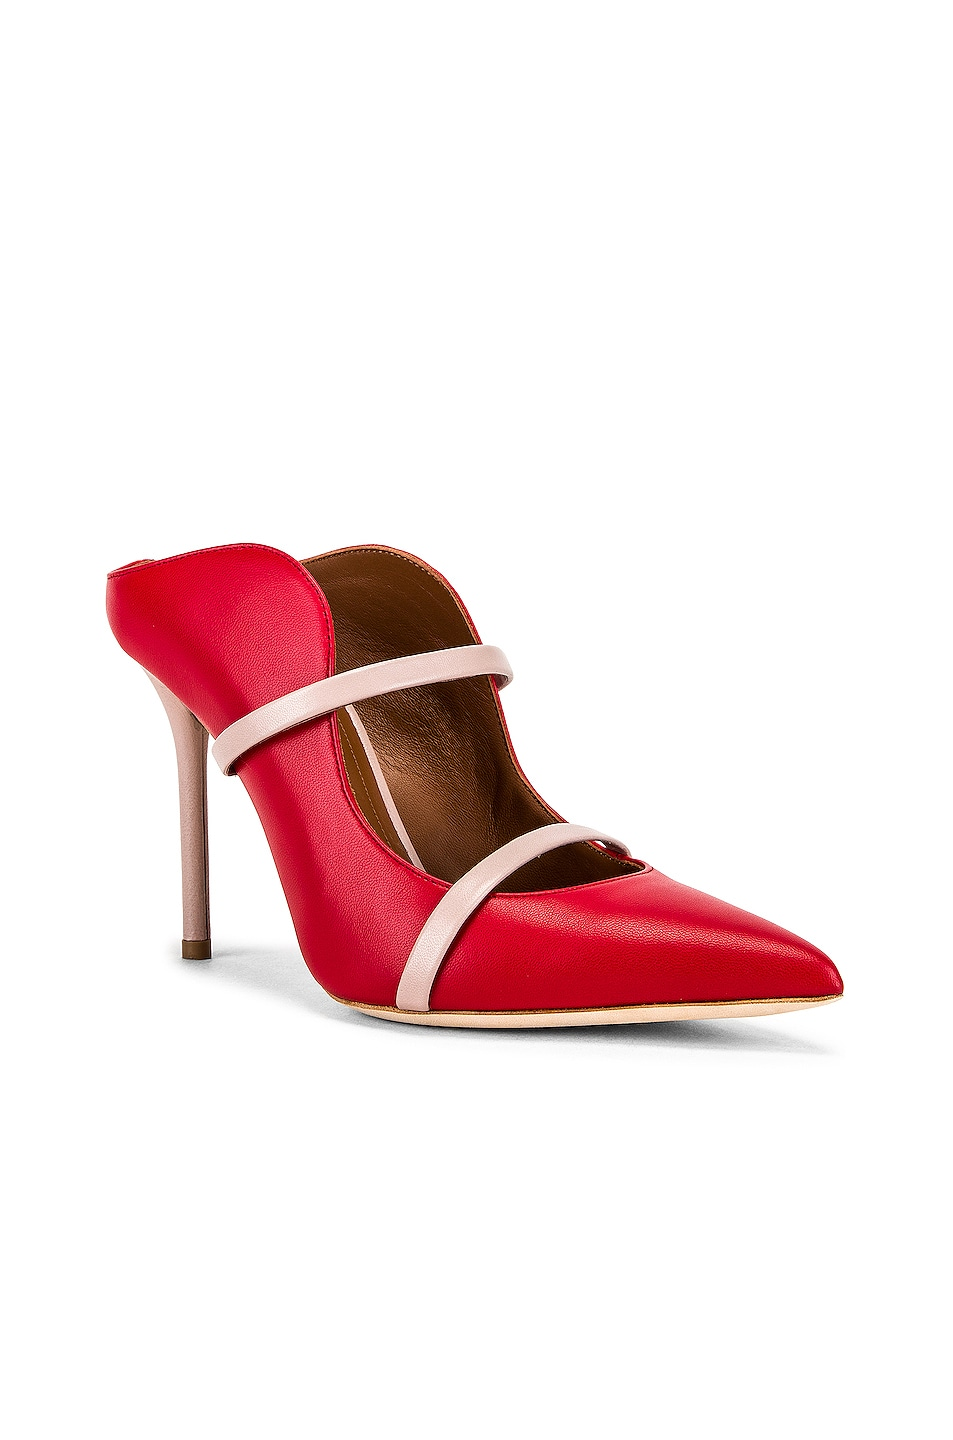 Image 2 of Malone Souliers Maureen MS 100 Heel in Red & Dusty Pink